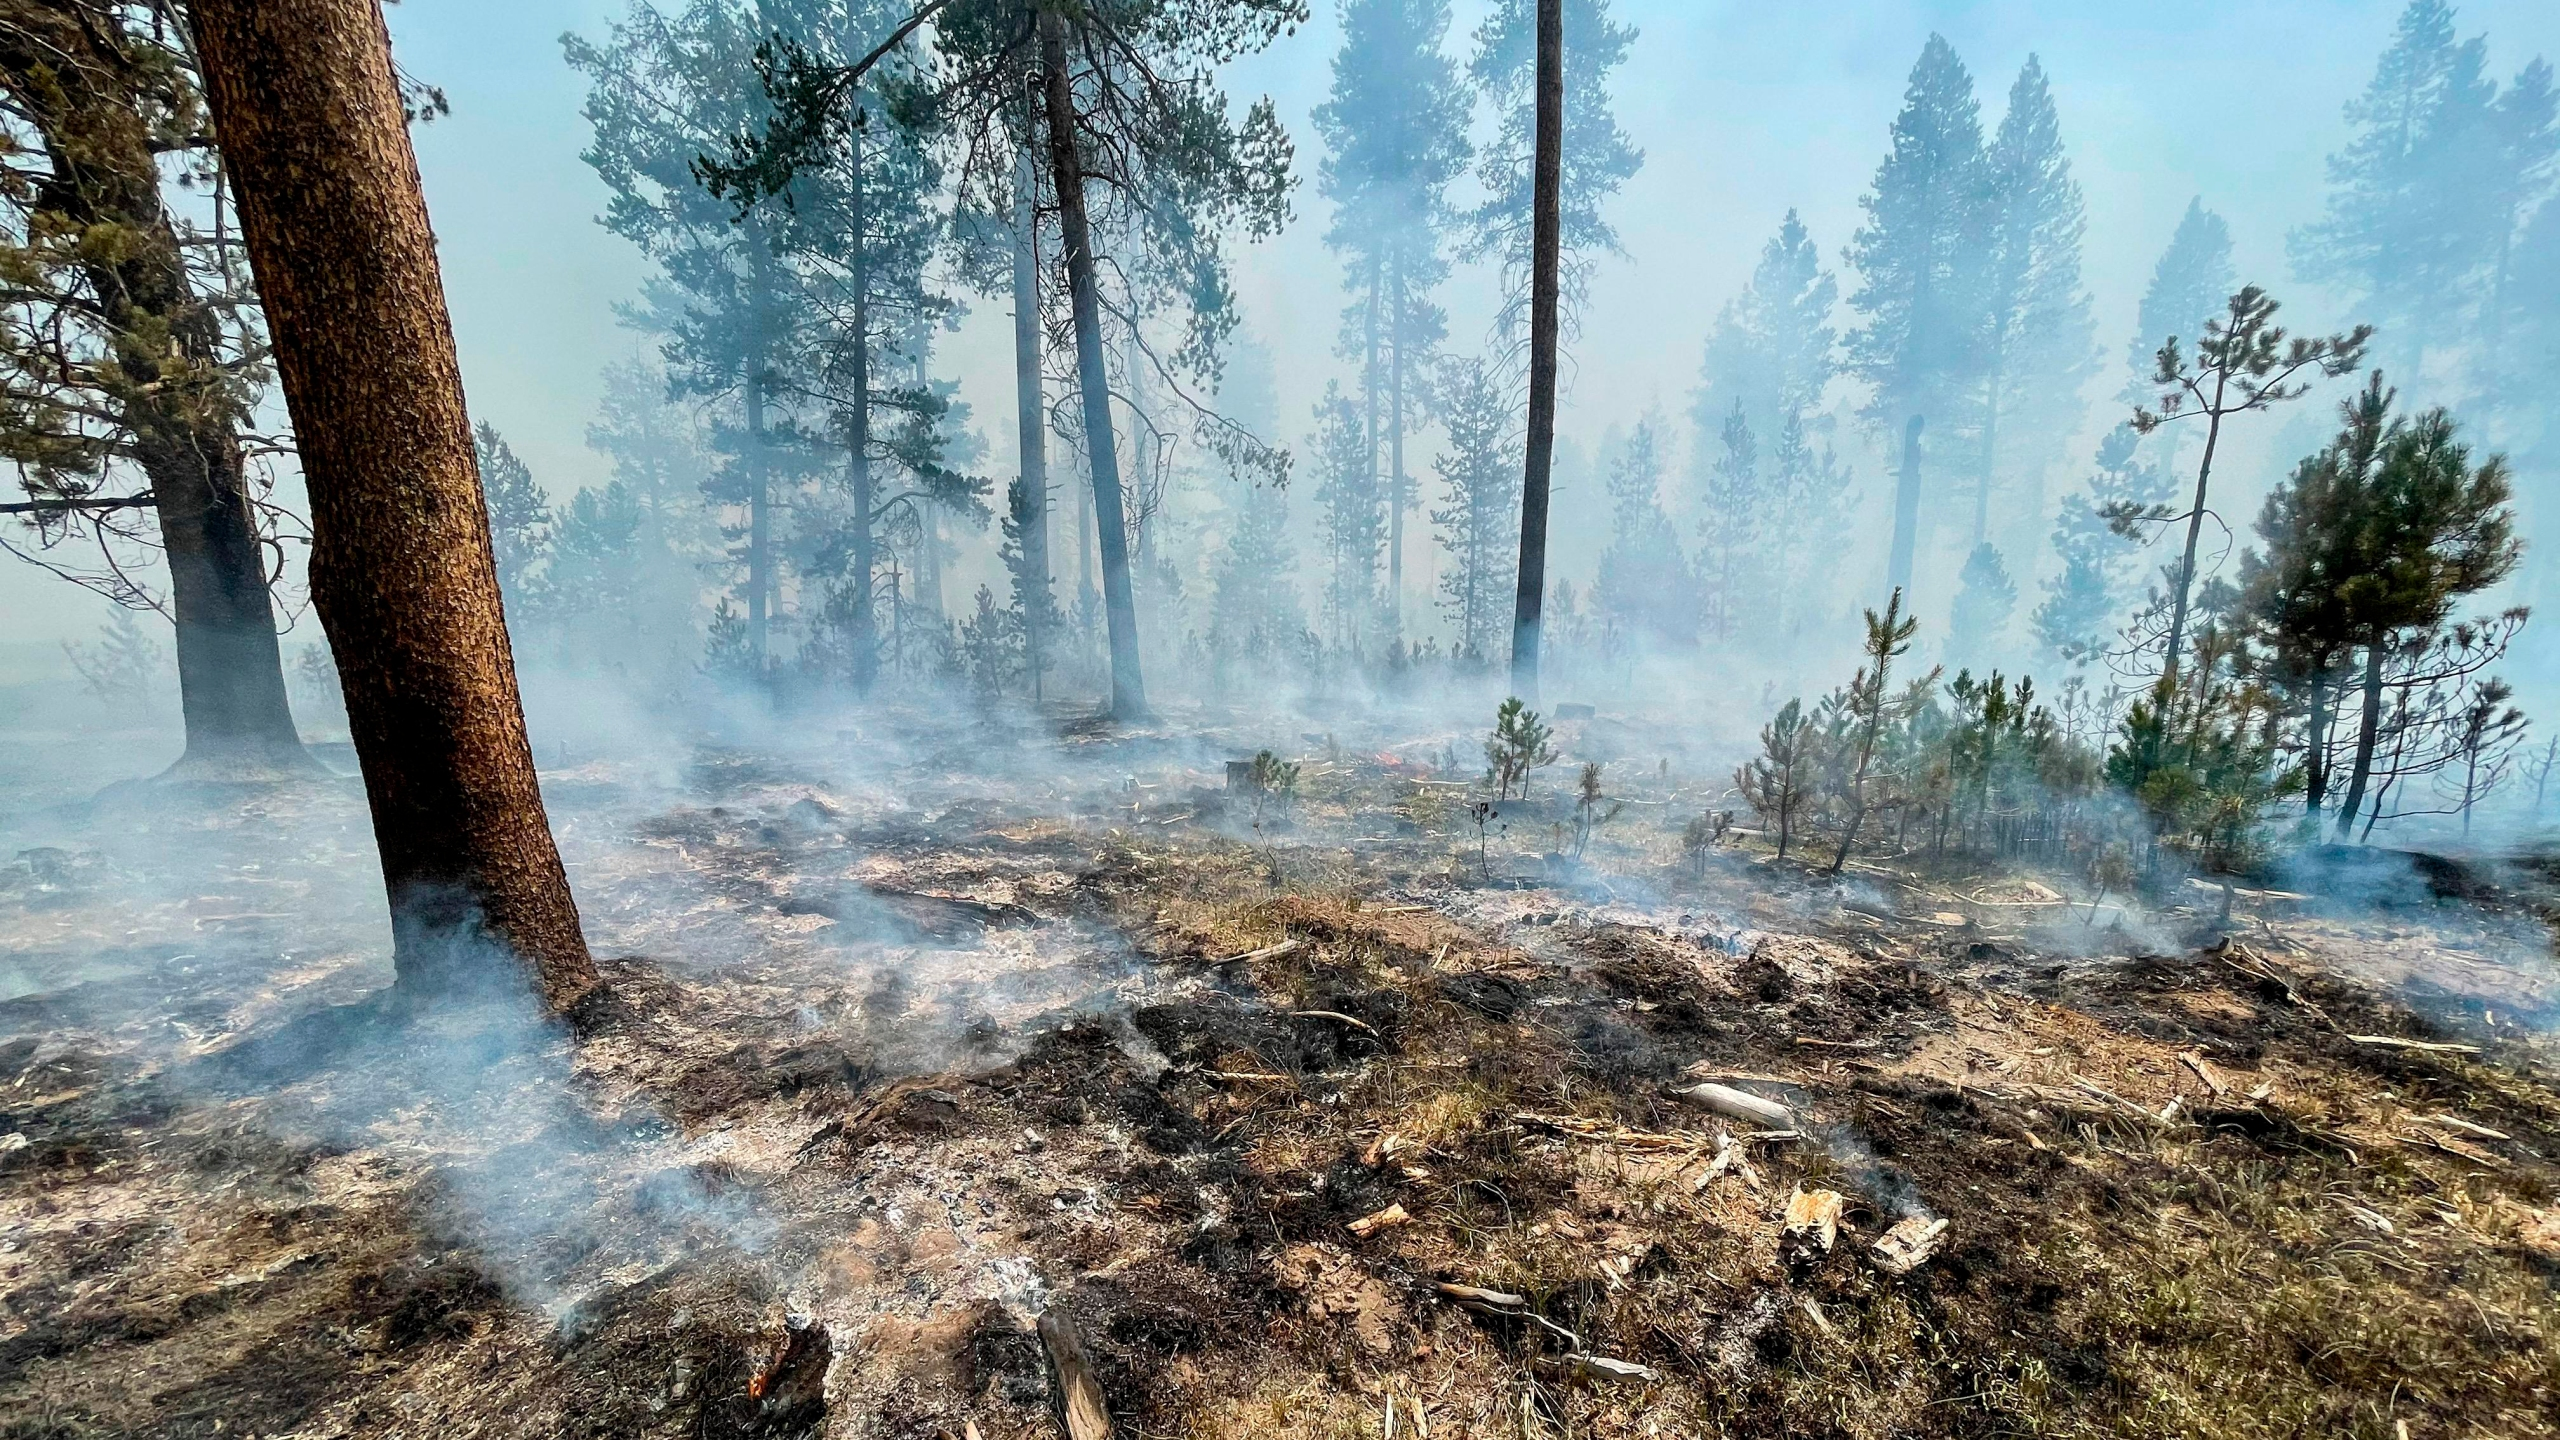 In this photo provided by the Bootleg Fire Incident Command, the Bootleg Fire is seen smoldering in southern Oregon, Saturday, July 17, 2021. The destructive Bootleg Fire, one of the largest in modern Oregon history, has already burned more than 476 square miles (1,210 square kilometers), an area about the size of Los Angeles. Meteorologists predicted critically dangerous fire weather through at least Monday with lightning possible in both California and southern Oregon. (Bootleg Fire Incident Command via AP)